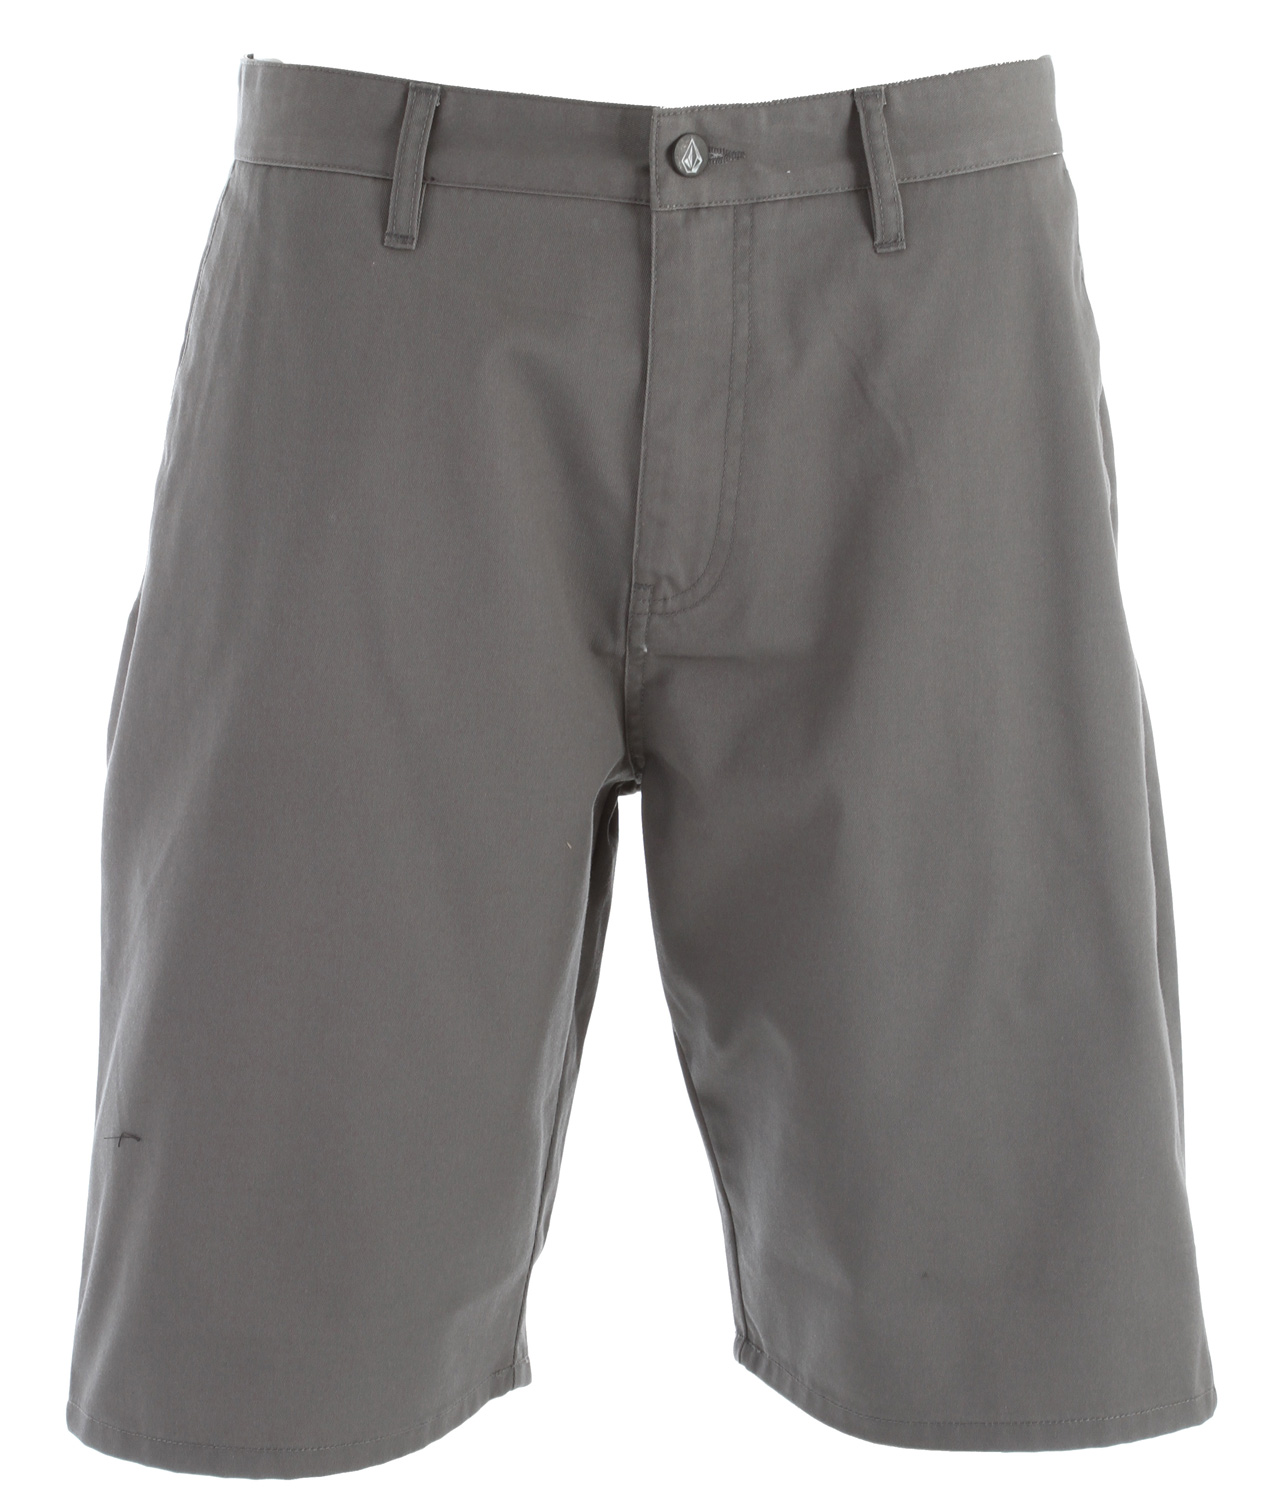 "Surf Frickin modern and frickin awesome, these chino shorts are the boss! Featuring a 22"" outseam, these standard fit chinos are ideal for anything from everyday wear to casual Fridays at the office. Not bad for one pair of shorts! 65% Polyester / 35% Cotton. - $30.95"